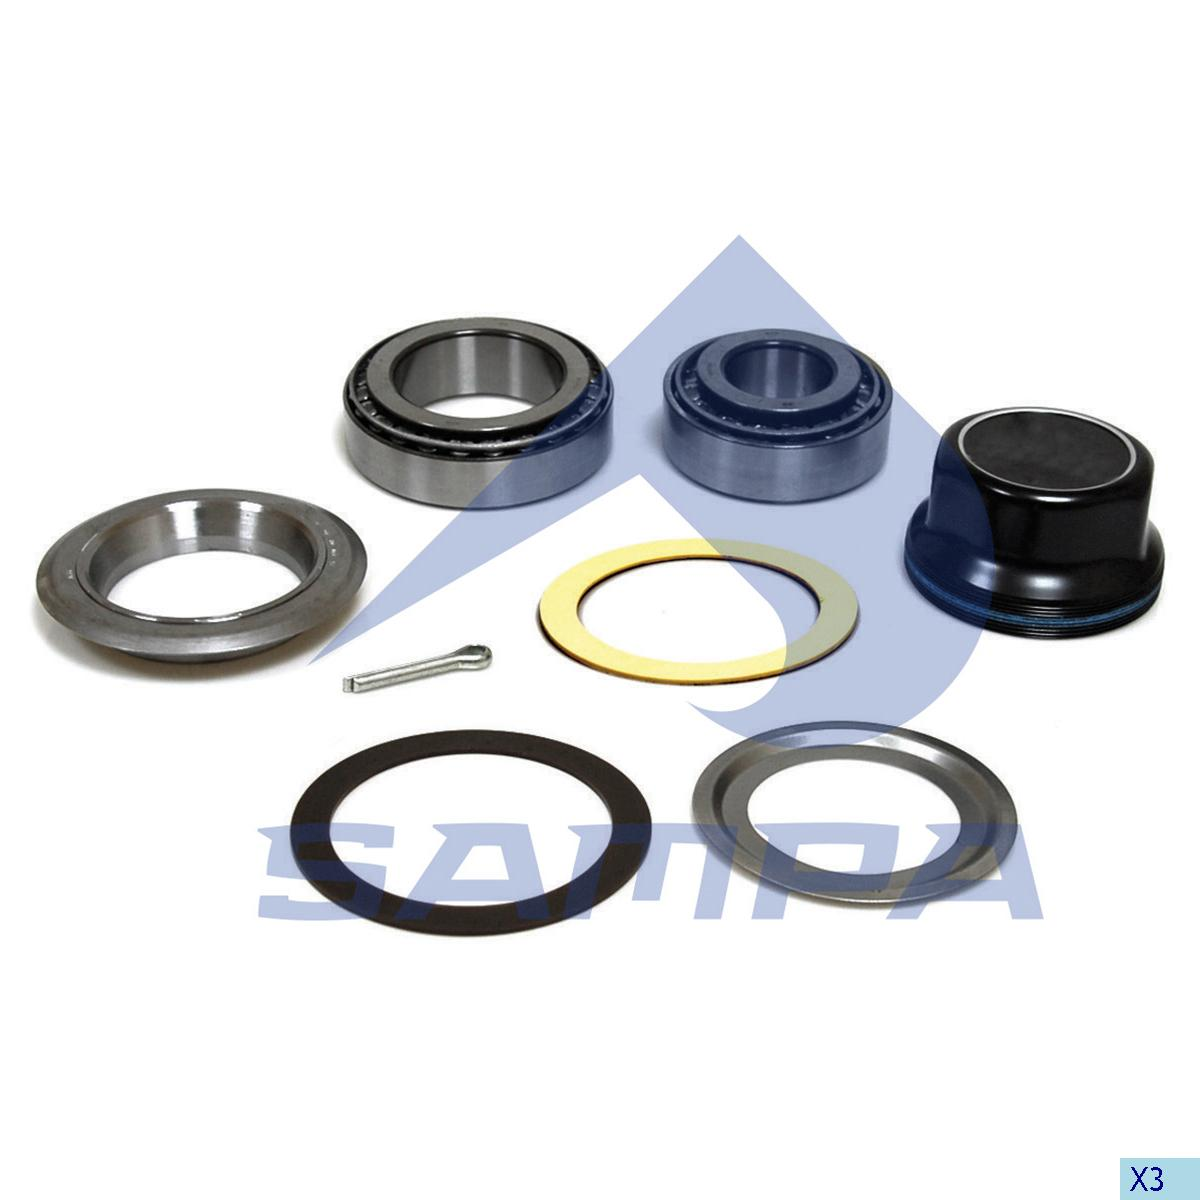 Repair Kit, Wheel Hub, Bergische Achsen, Power Unit